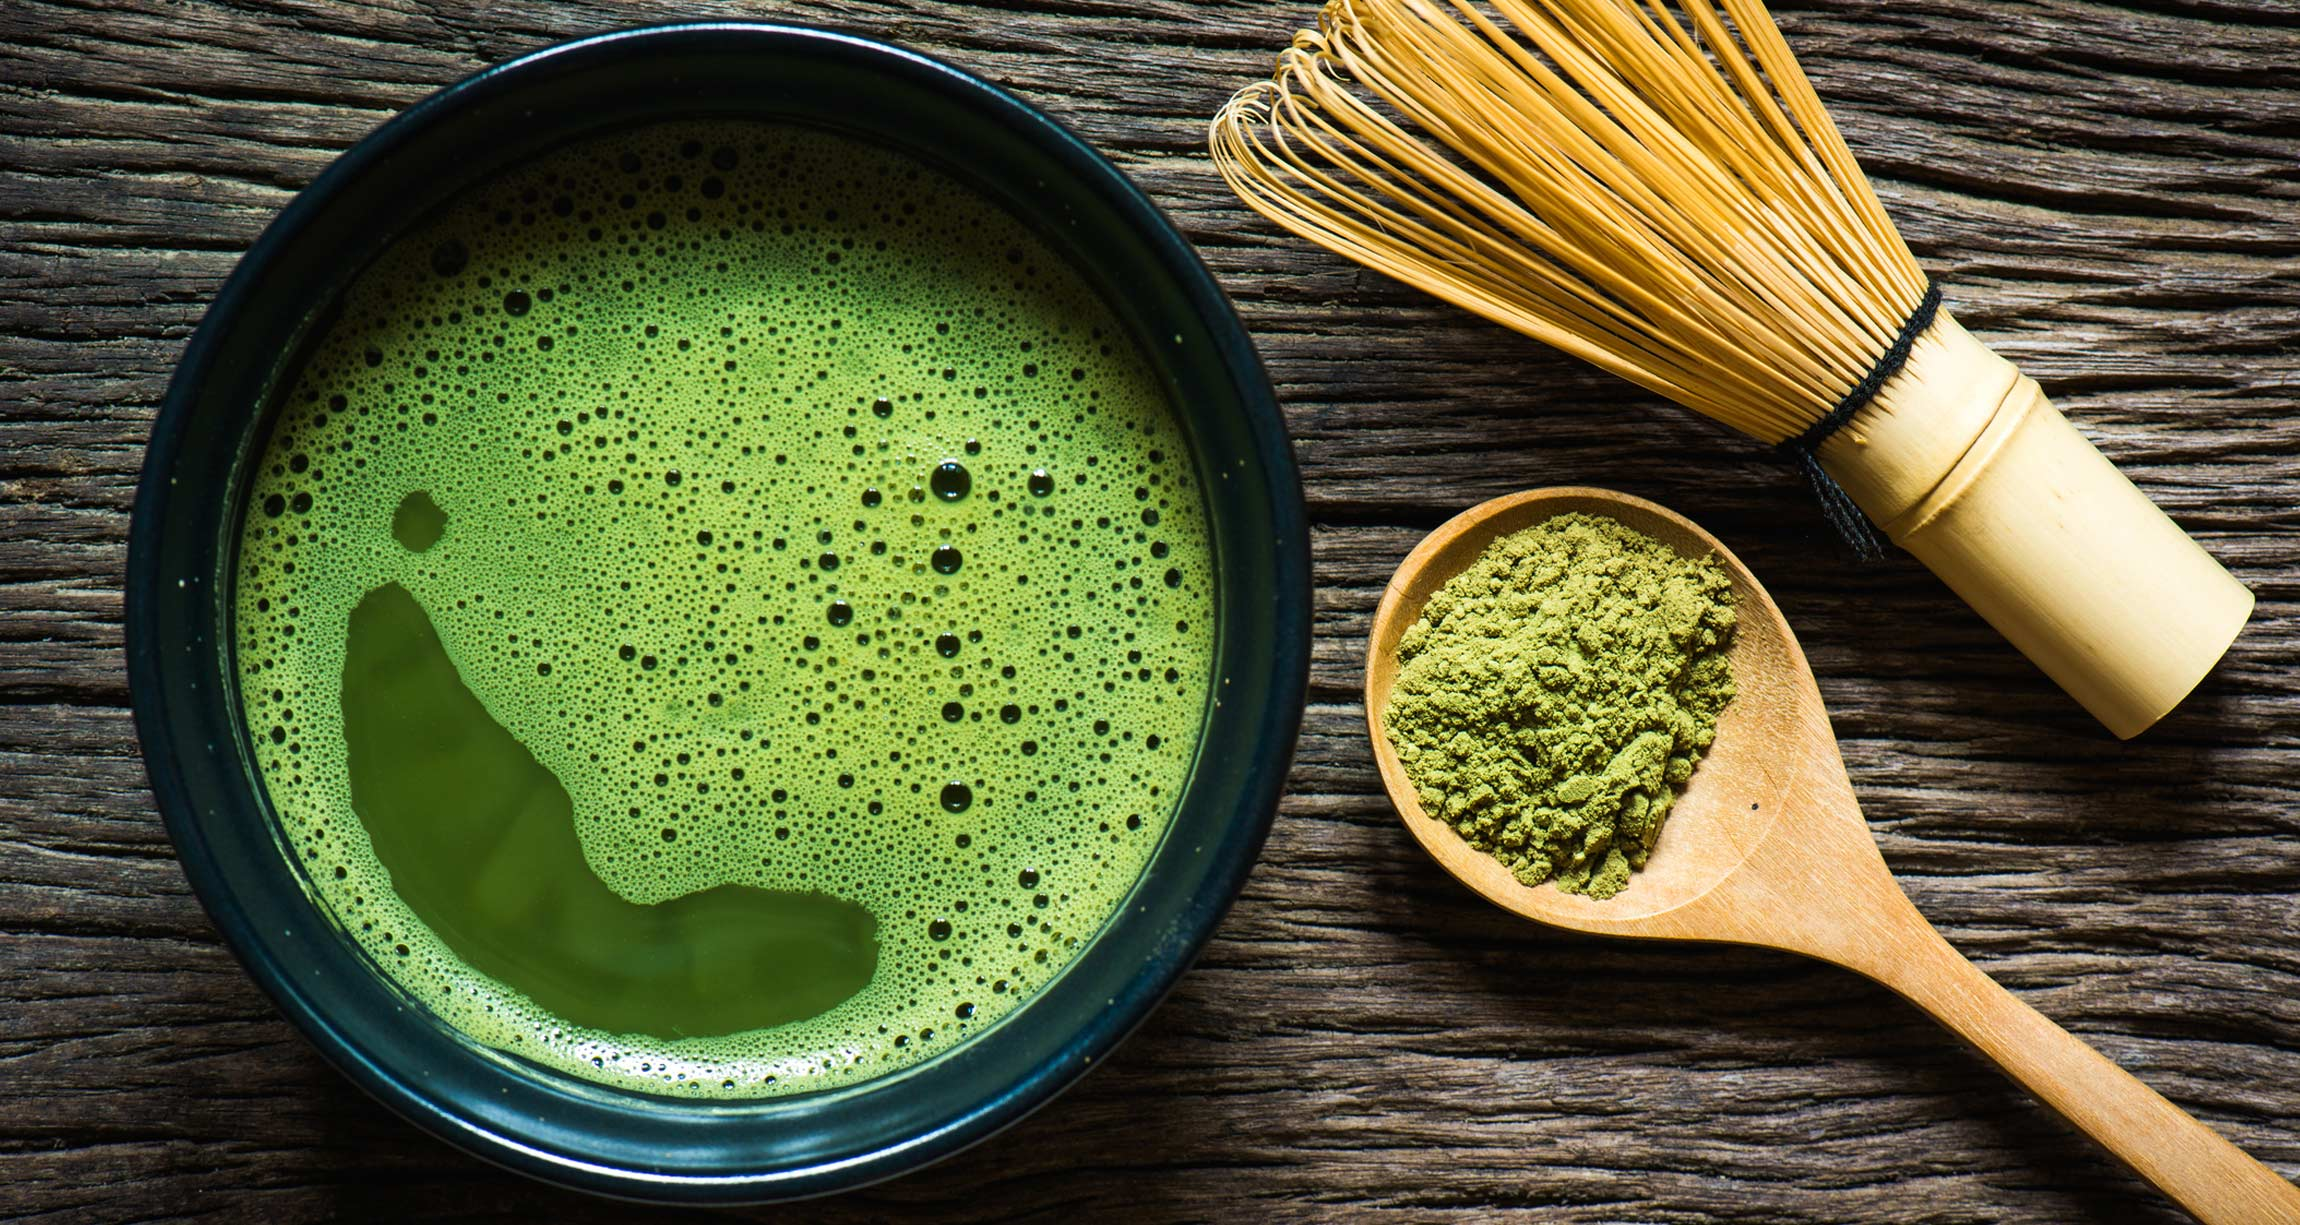 Matcha Tea Health Benefits 6 Reasons Why You Should Try It